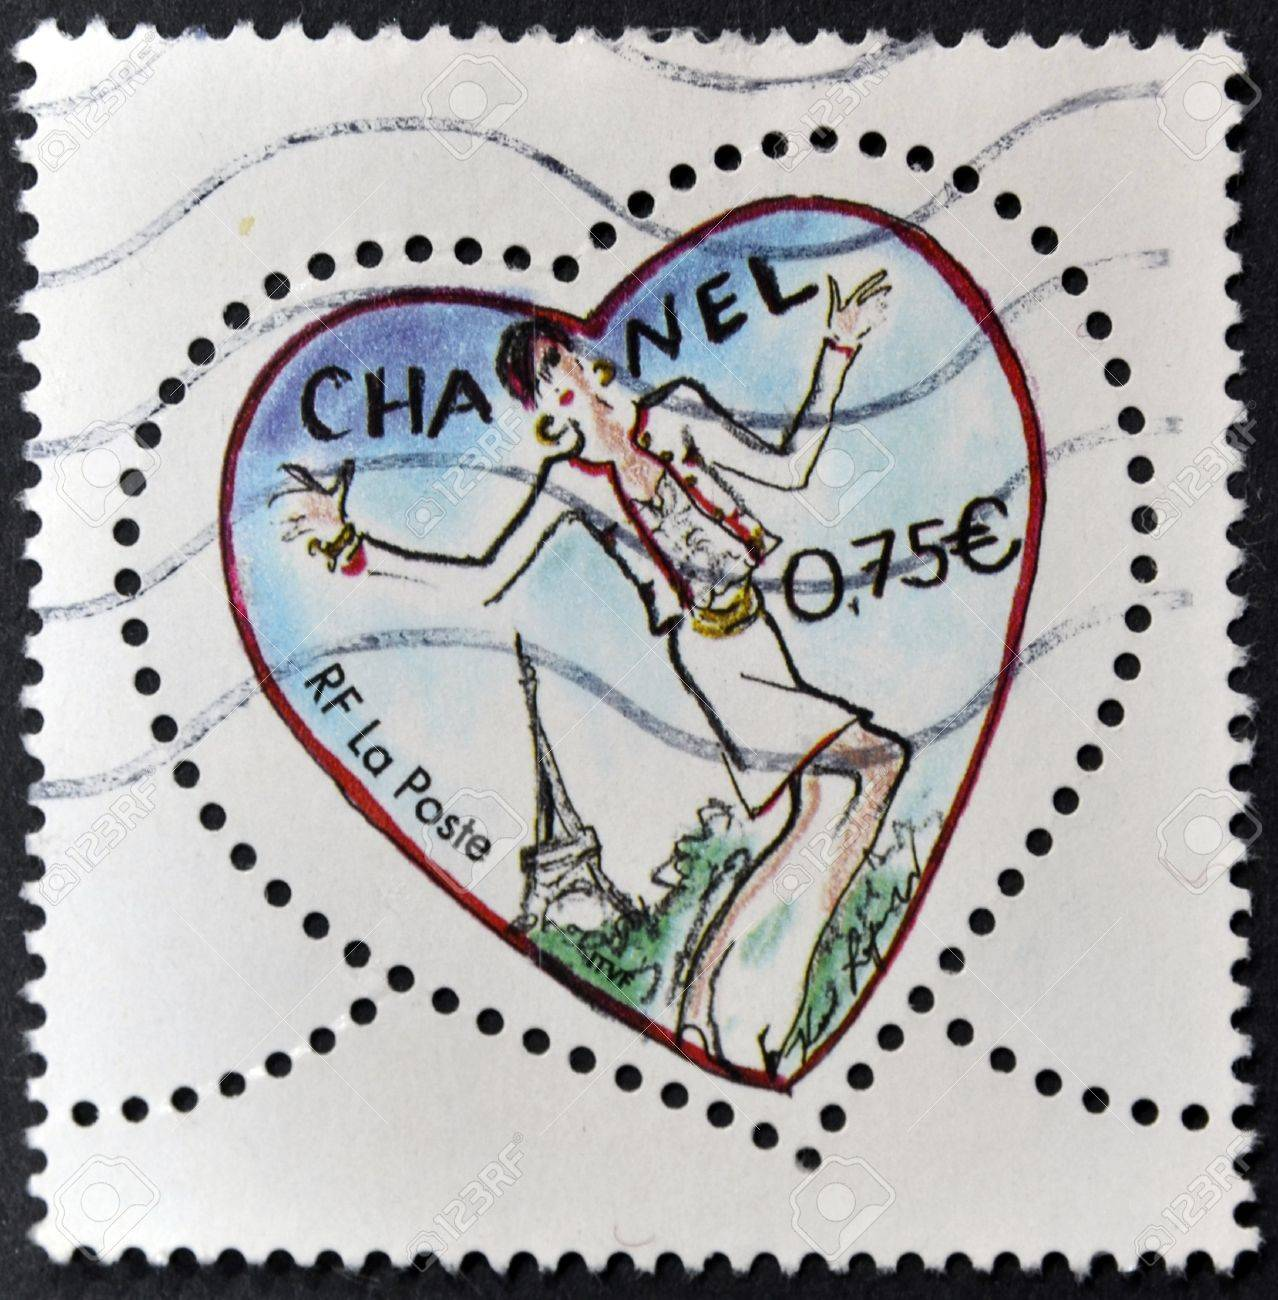 FRANCE - CIRCA 2003: A stamp printed in France shows a heart by Chanel, circa 2003 Stock Photo - 11949362